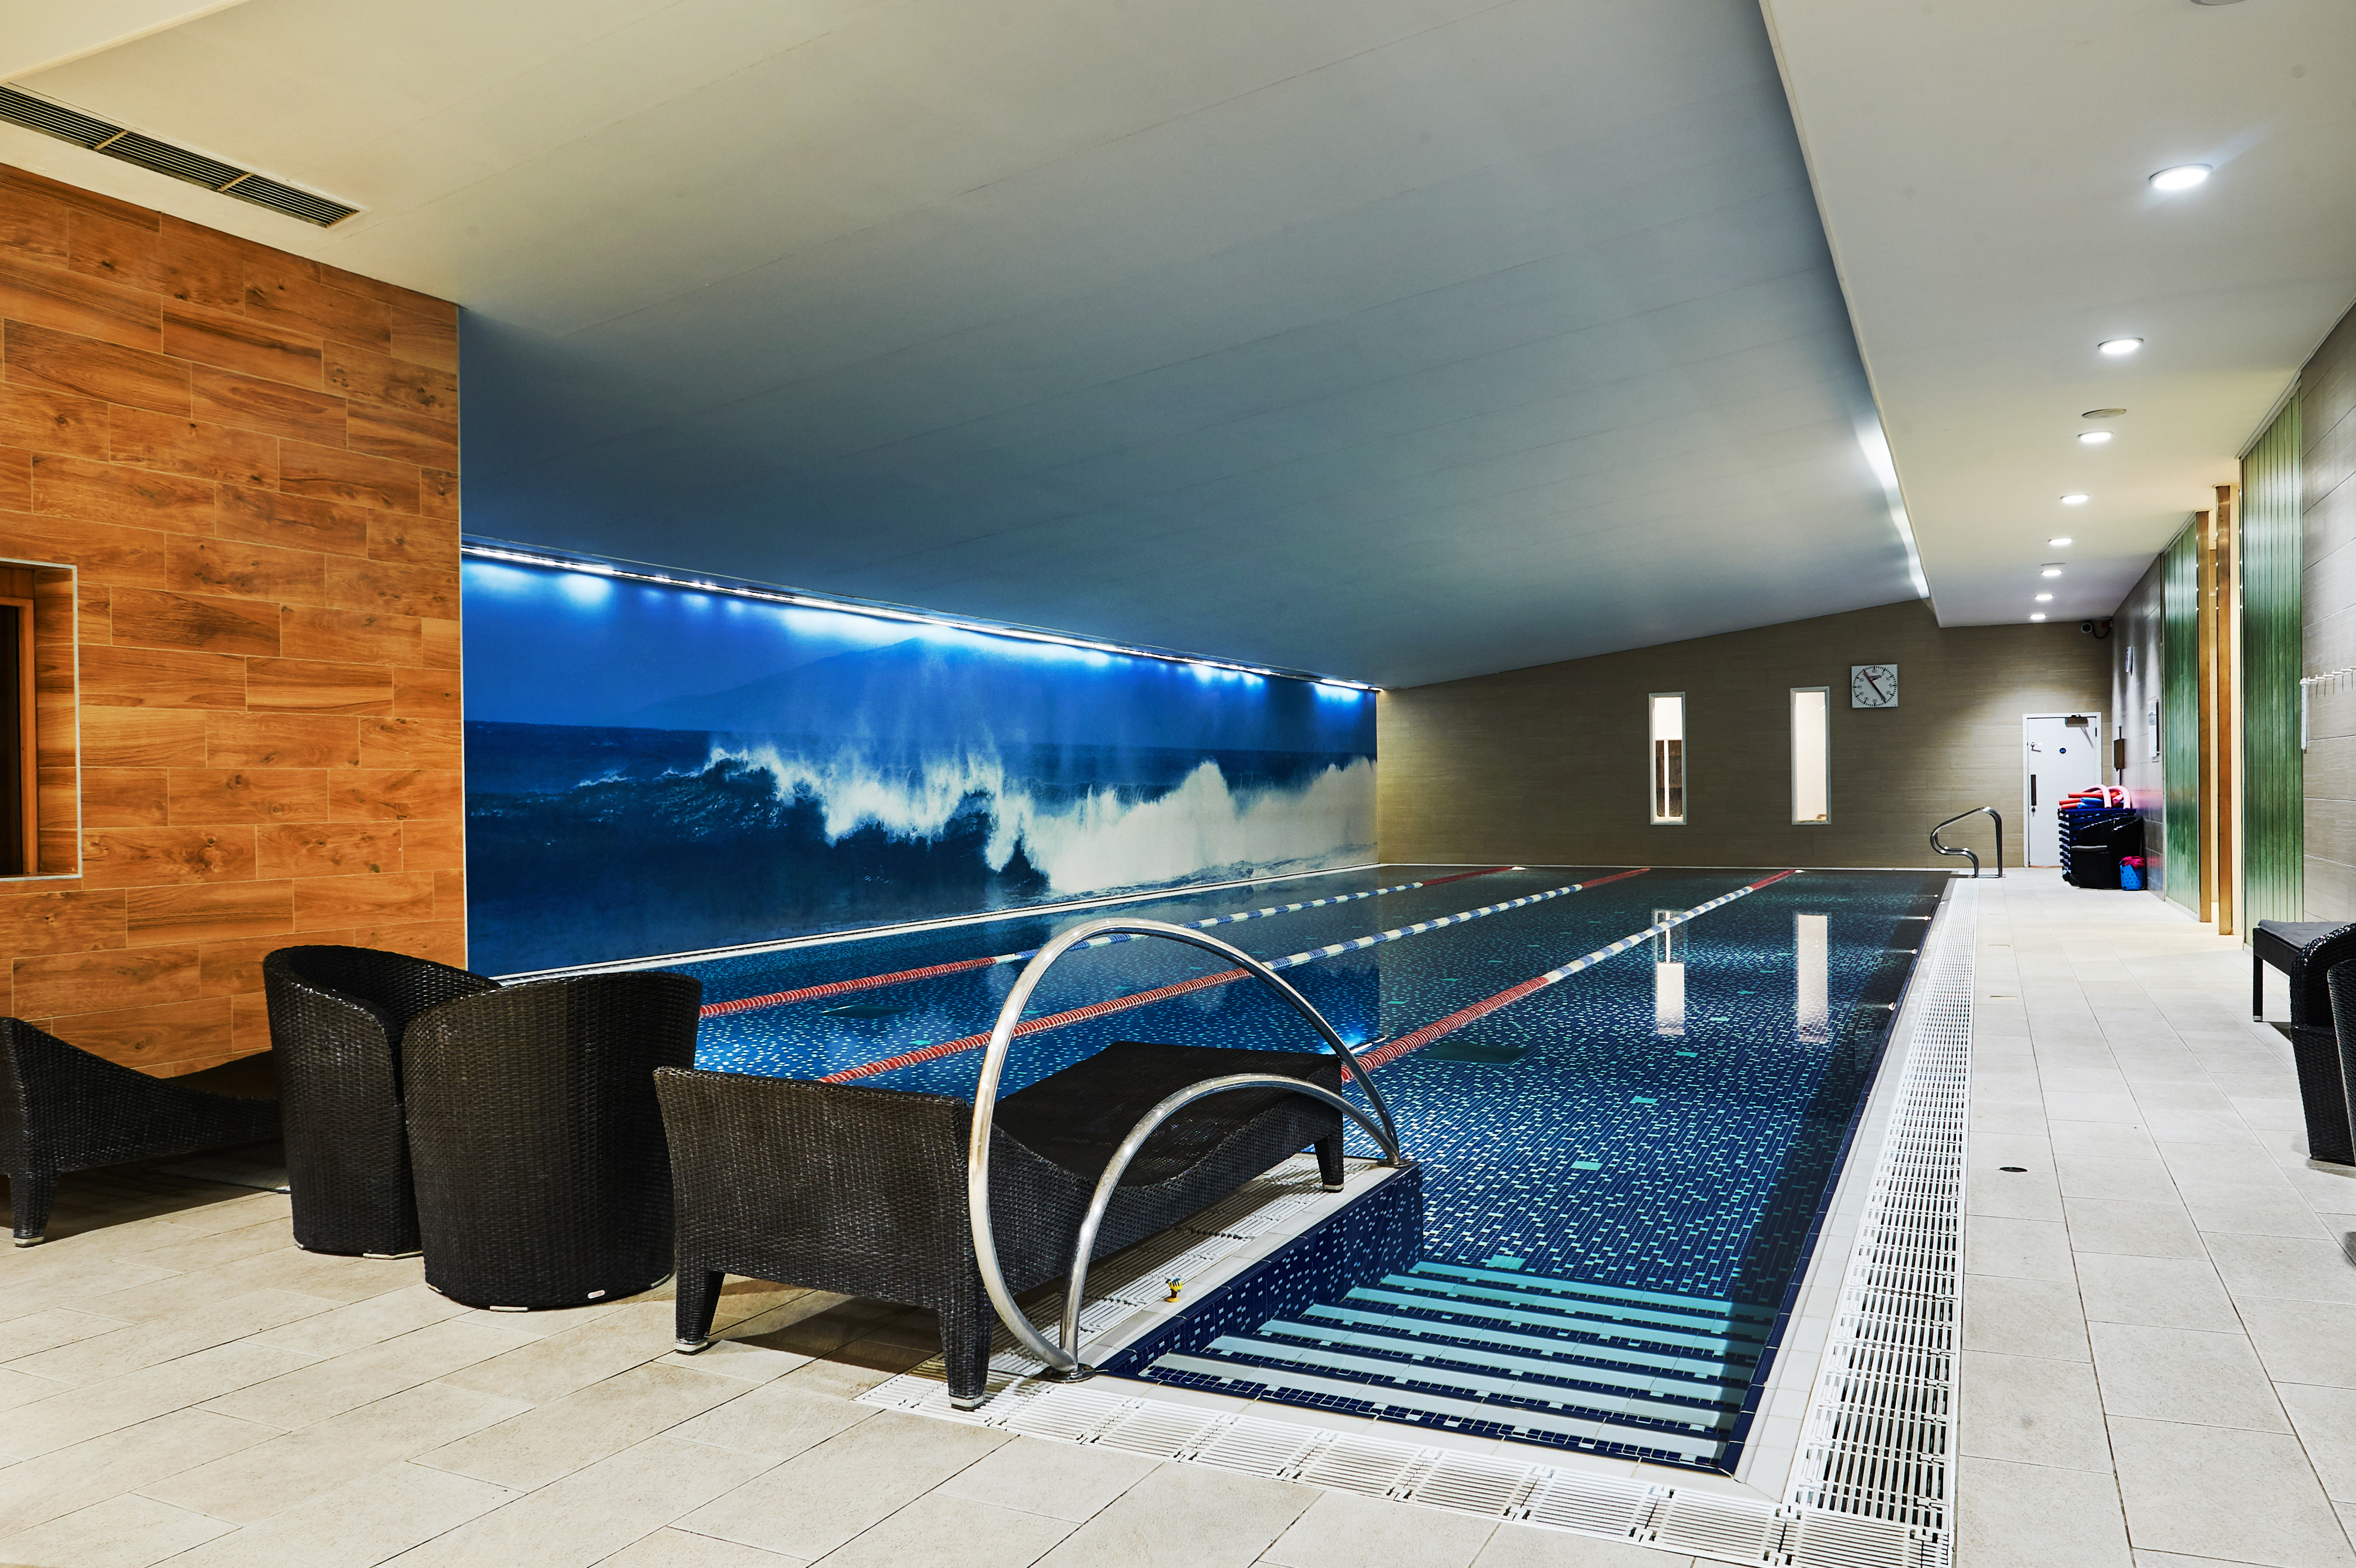 The pool at Notting Hill Harbour Club